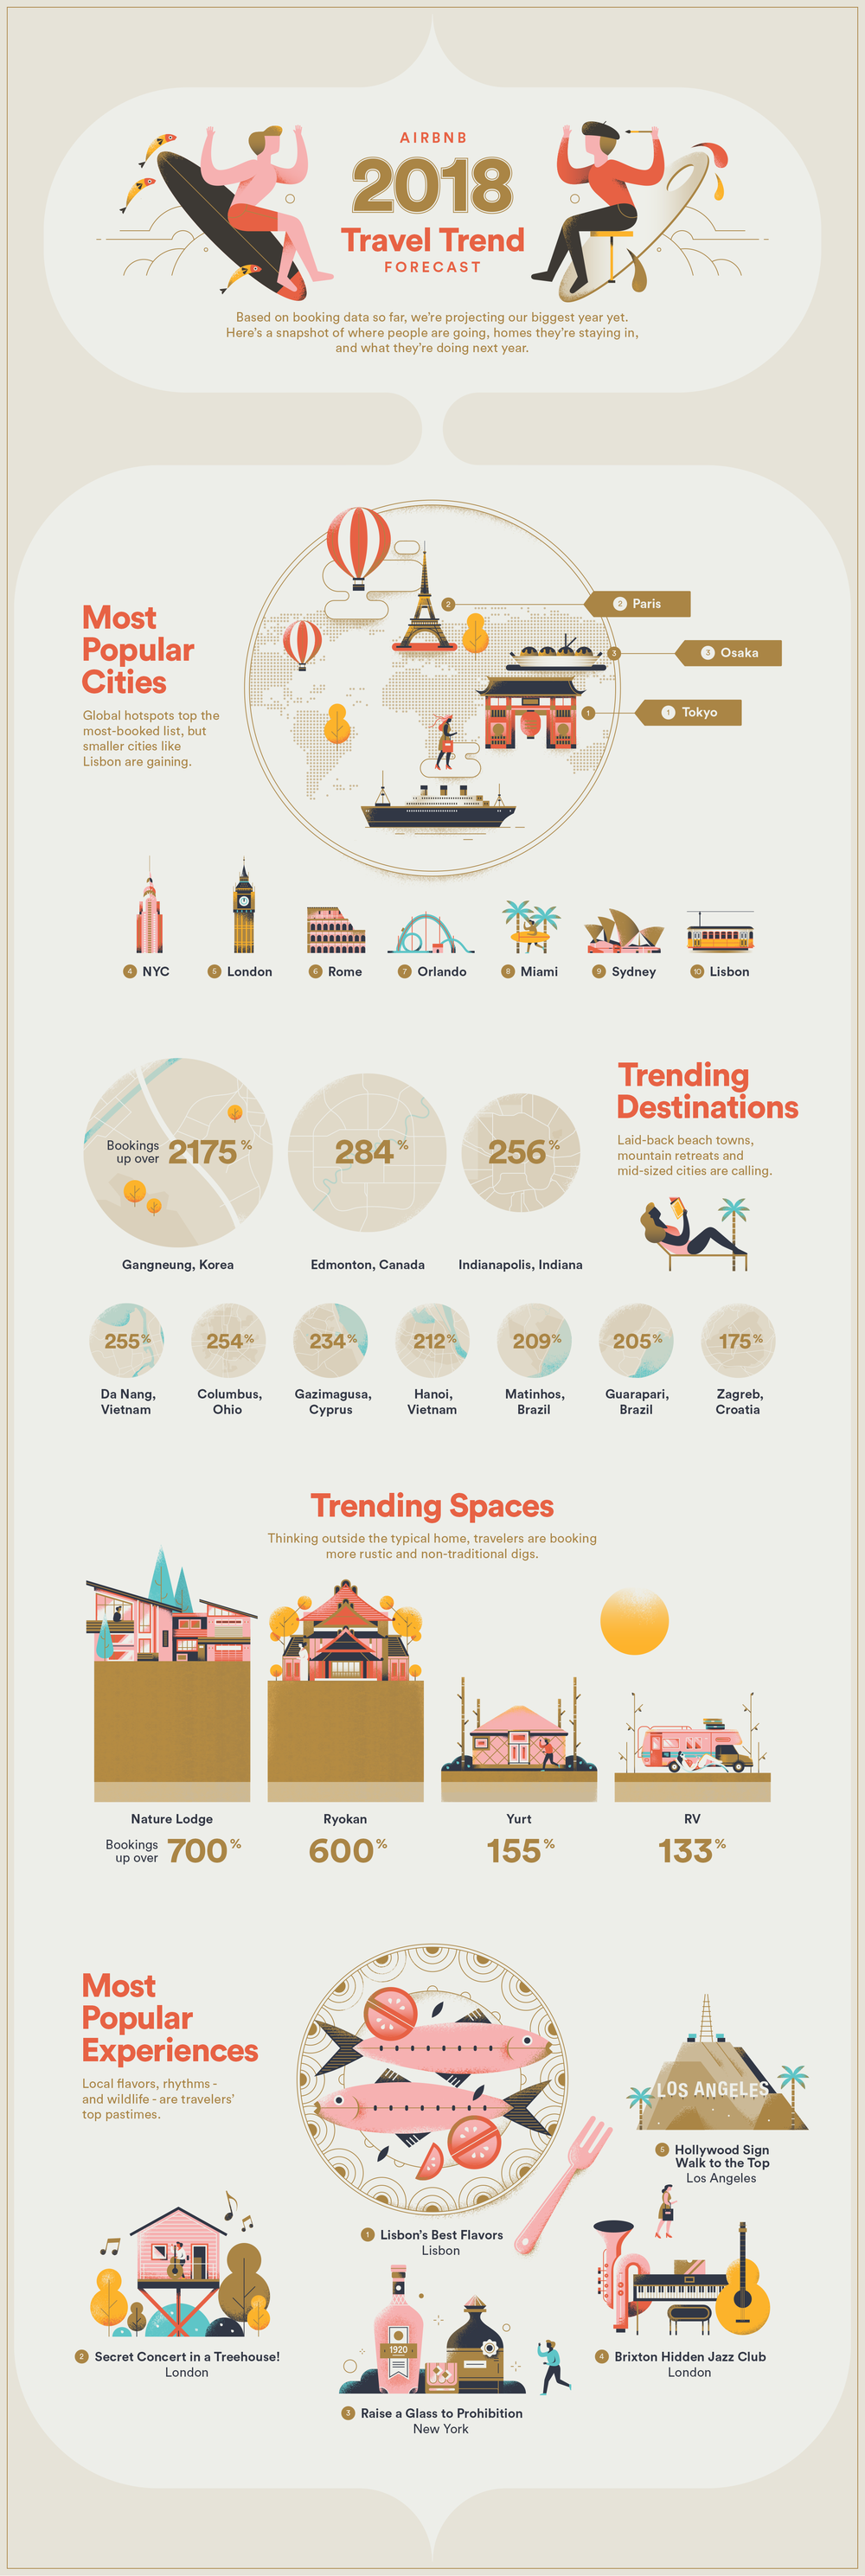 airbnb_travelTrends2018.png